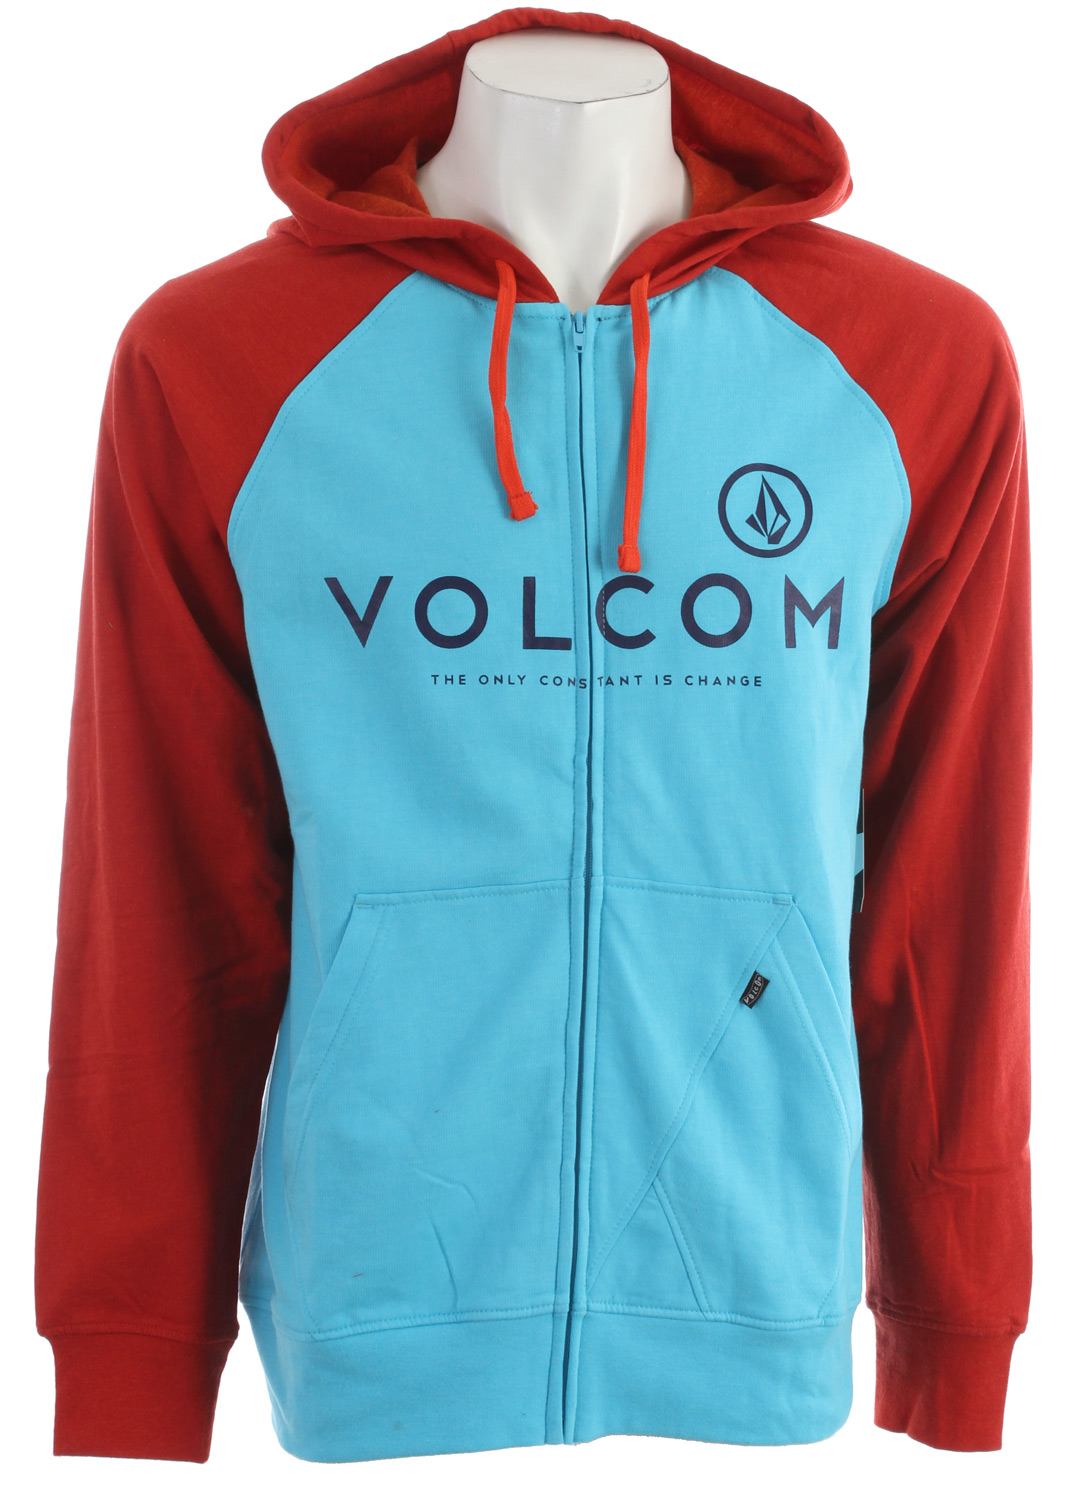 Surf Key Features of the Volcom Constant Change Hoodie: Heather slim zip hood Center chest print Contrast hood and raglan sleeves 2-Tone Drawcords Stone panel pocket detail Pre-Shrunk Slim fit 55% Cotton / 45% Polyester Heather Fleece, 220-230gm - $35.95